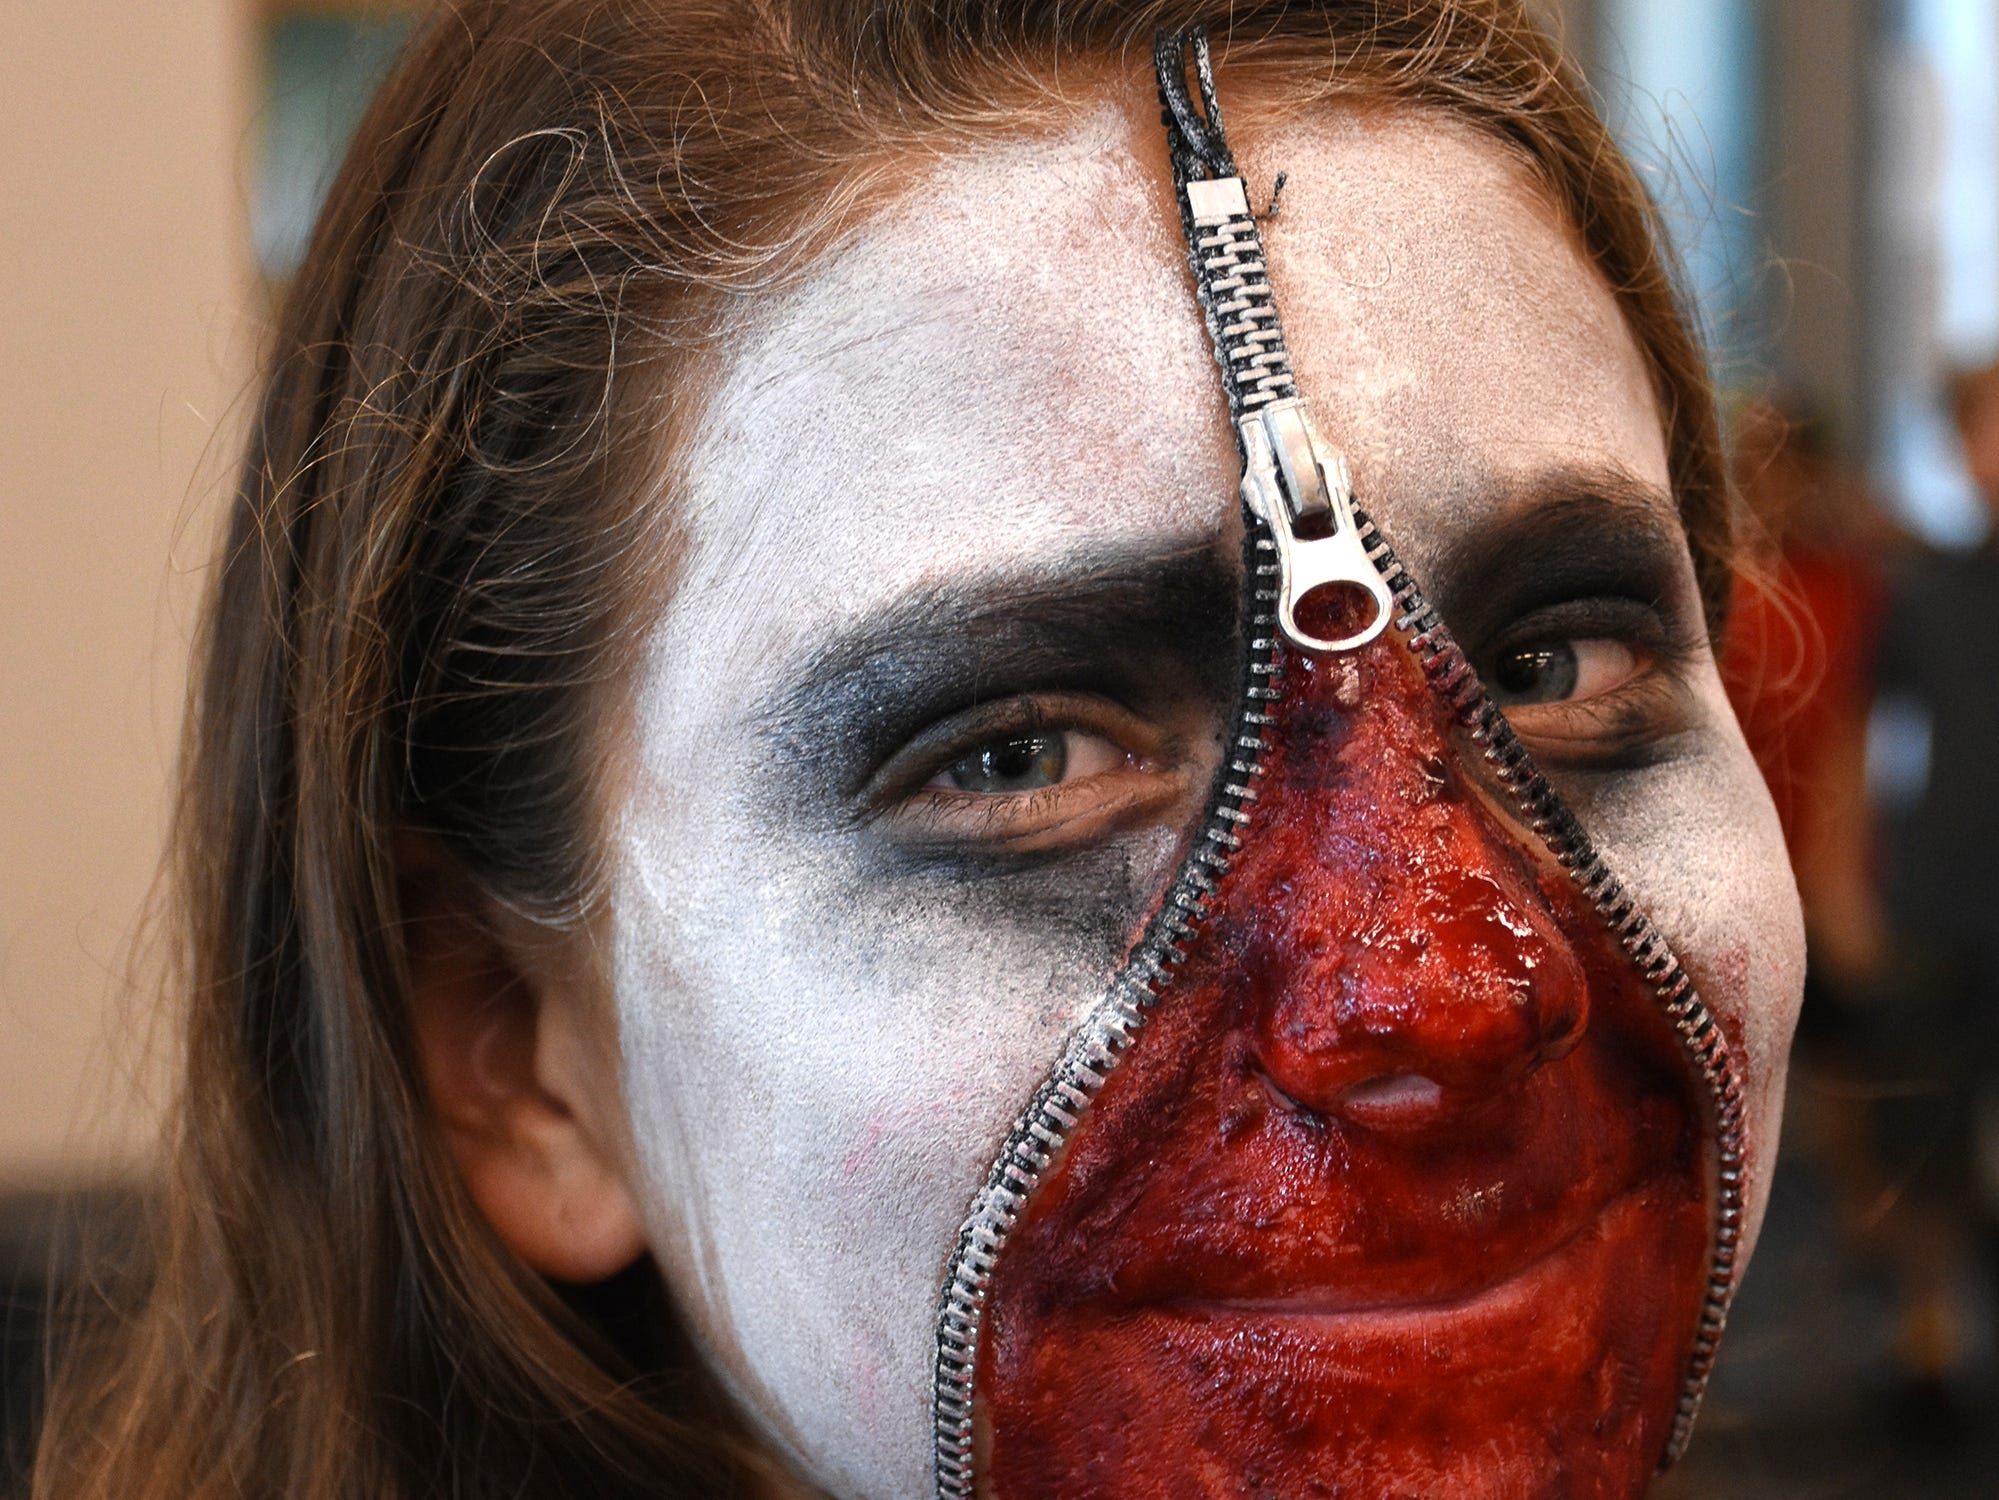 Mary Montgomery, 11, seems to have unzipped her face. The Spooktacular, the City of Marco Island's pre-Halloween celebration, returned to Mackle Park's air-nasium on Saturday afternoon, with costumes, games and family fun.